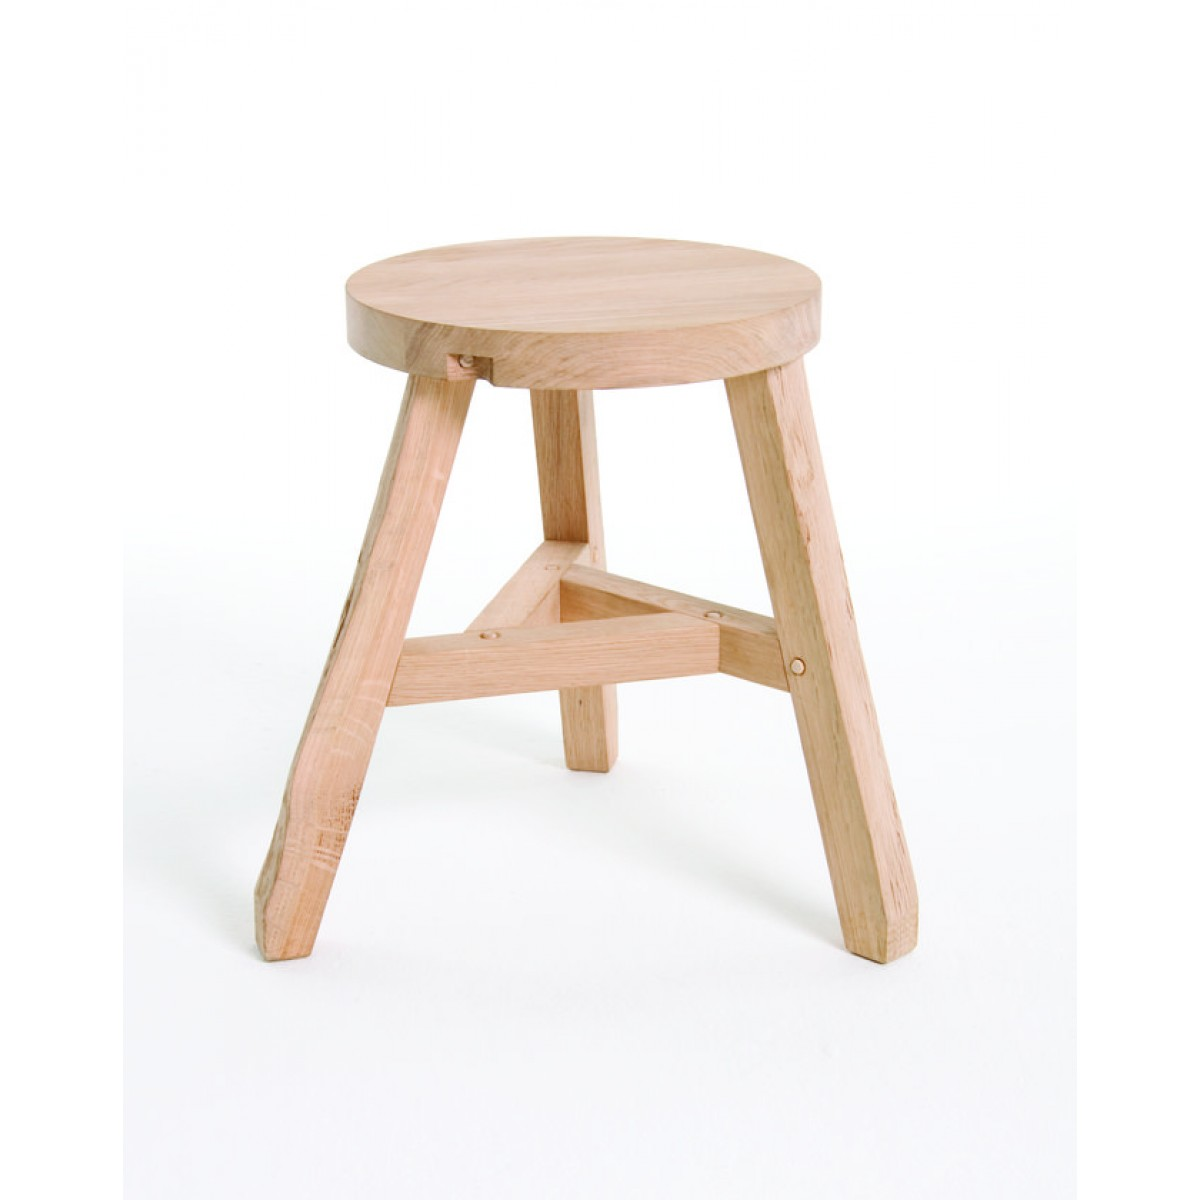 Holz-design hocker